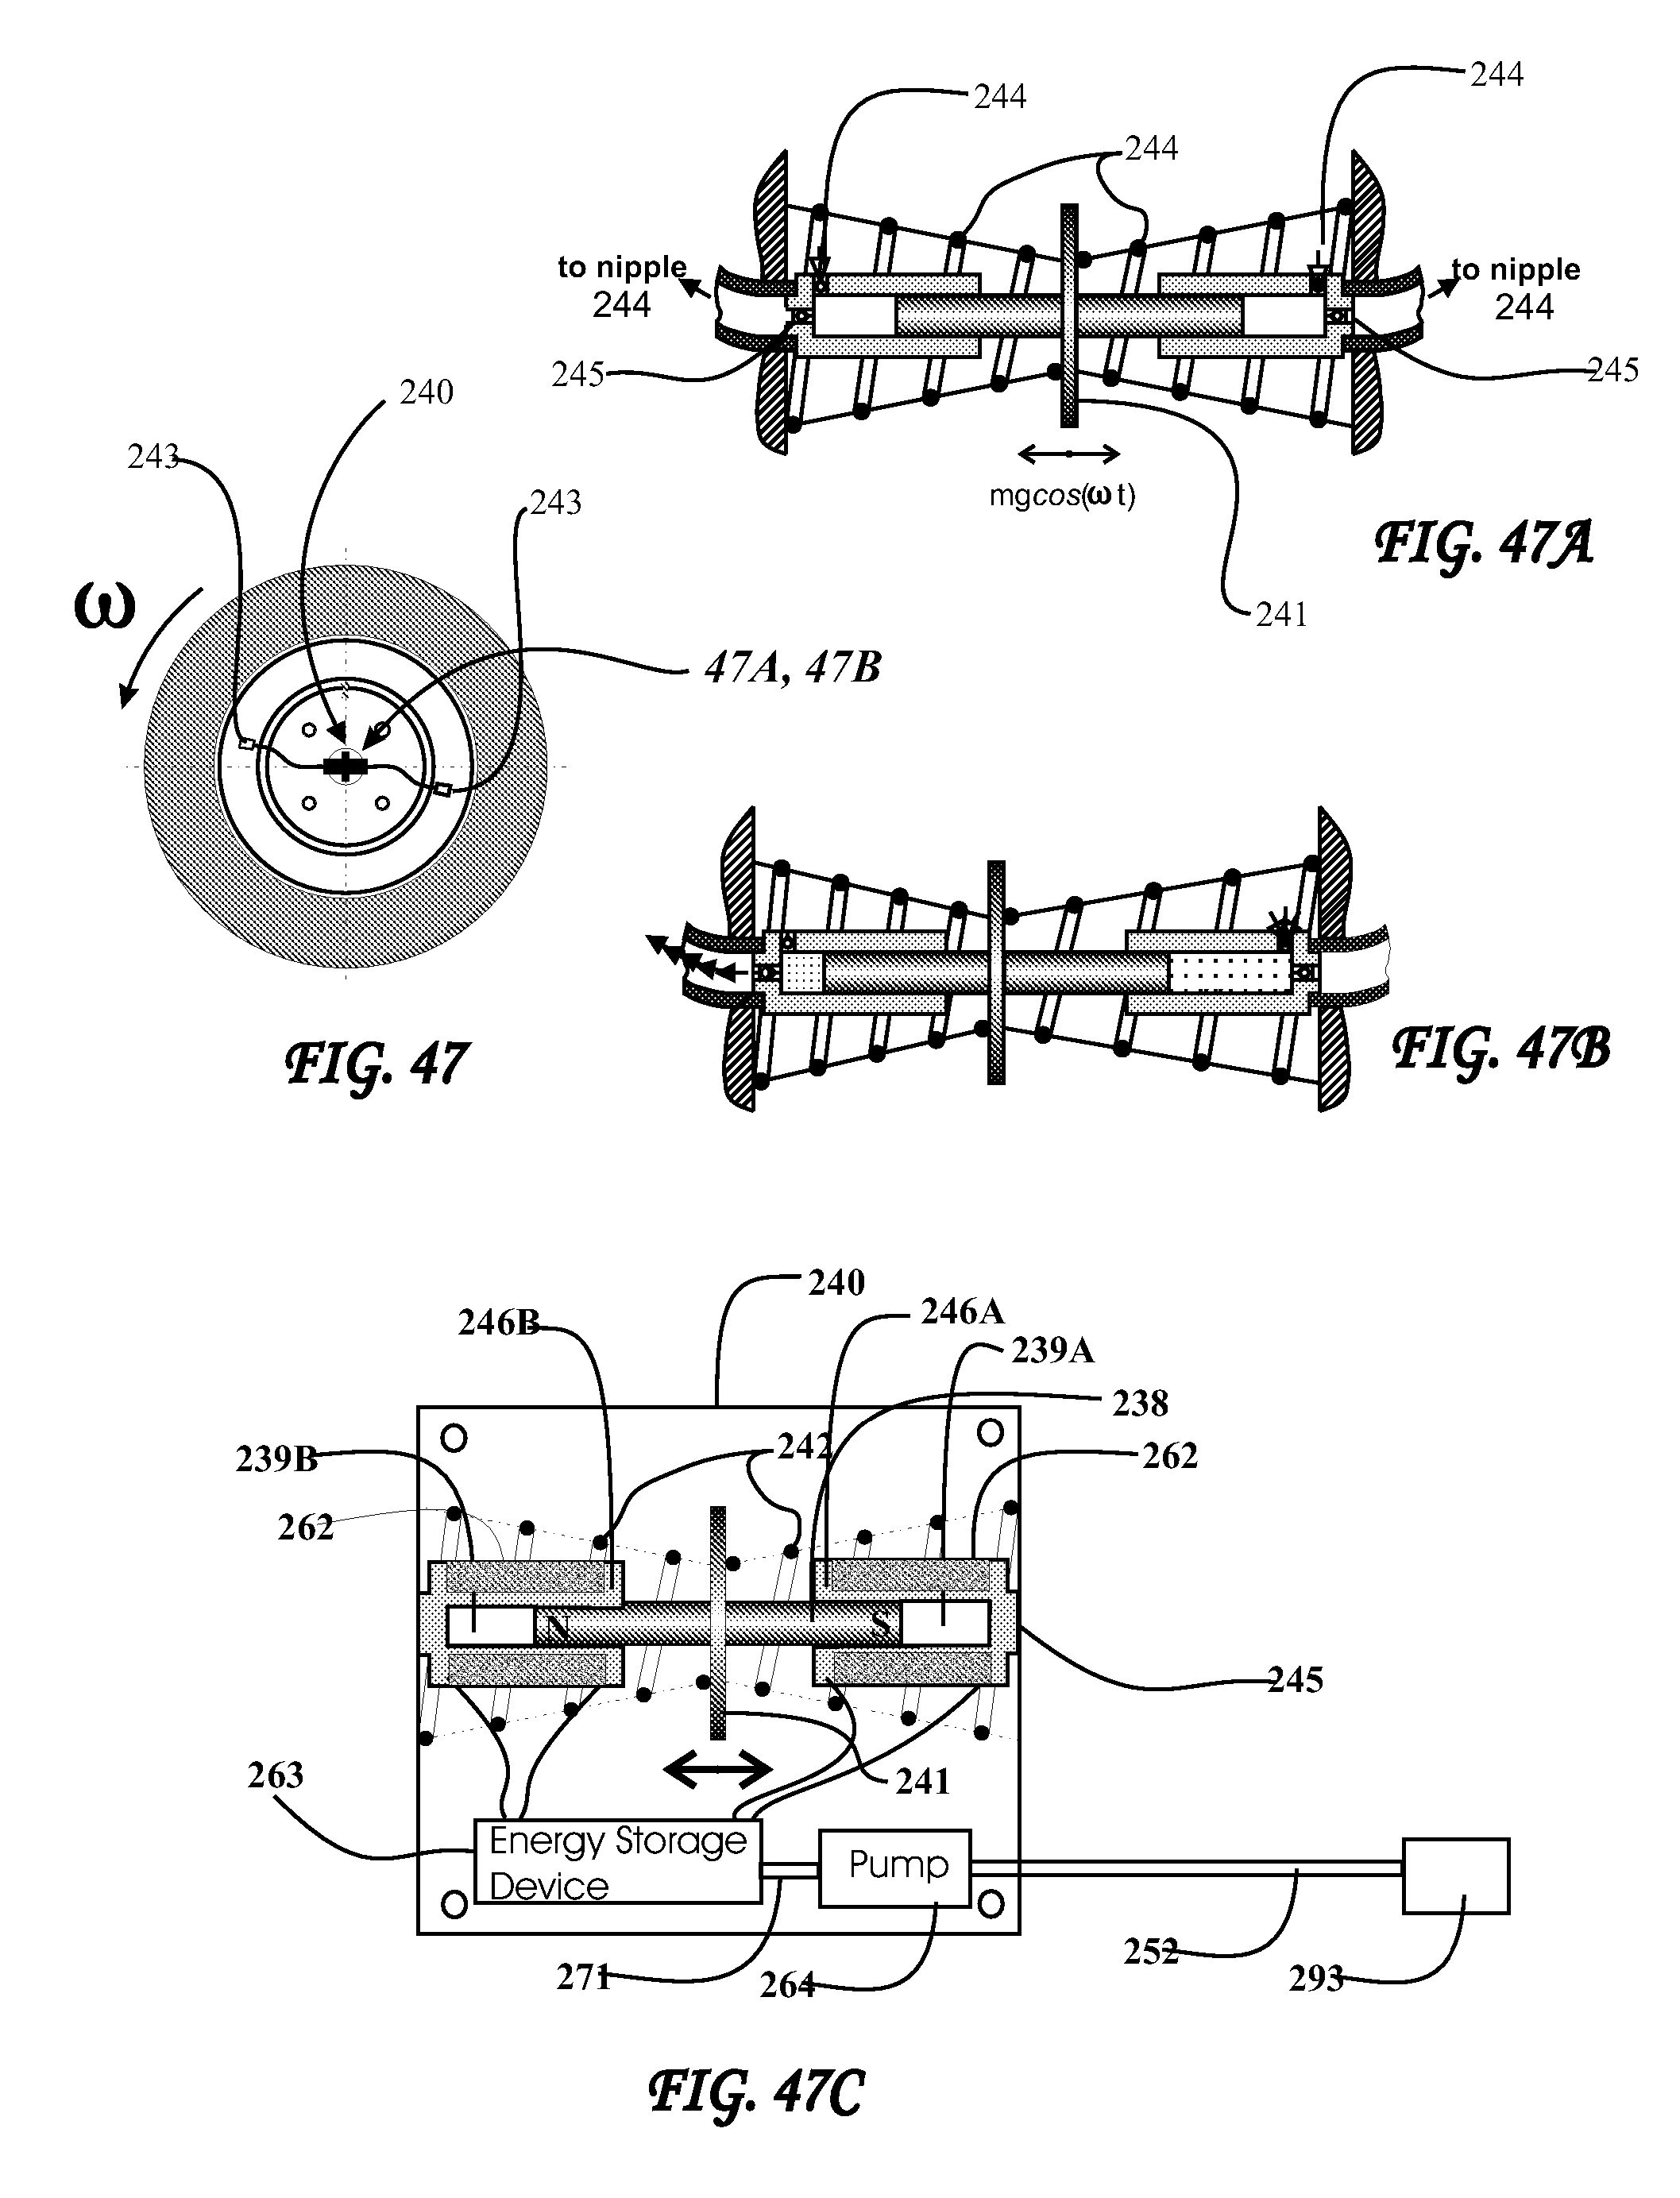 Light Switch Diagram 0735 Front Headlight Harness Diagram 0862 Chris